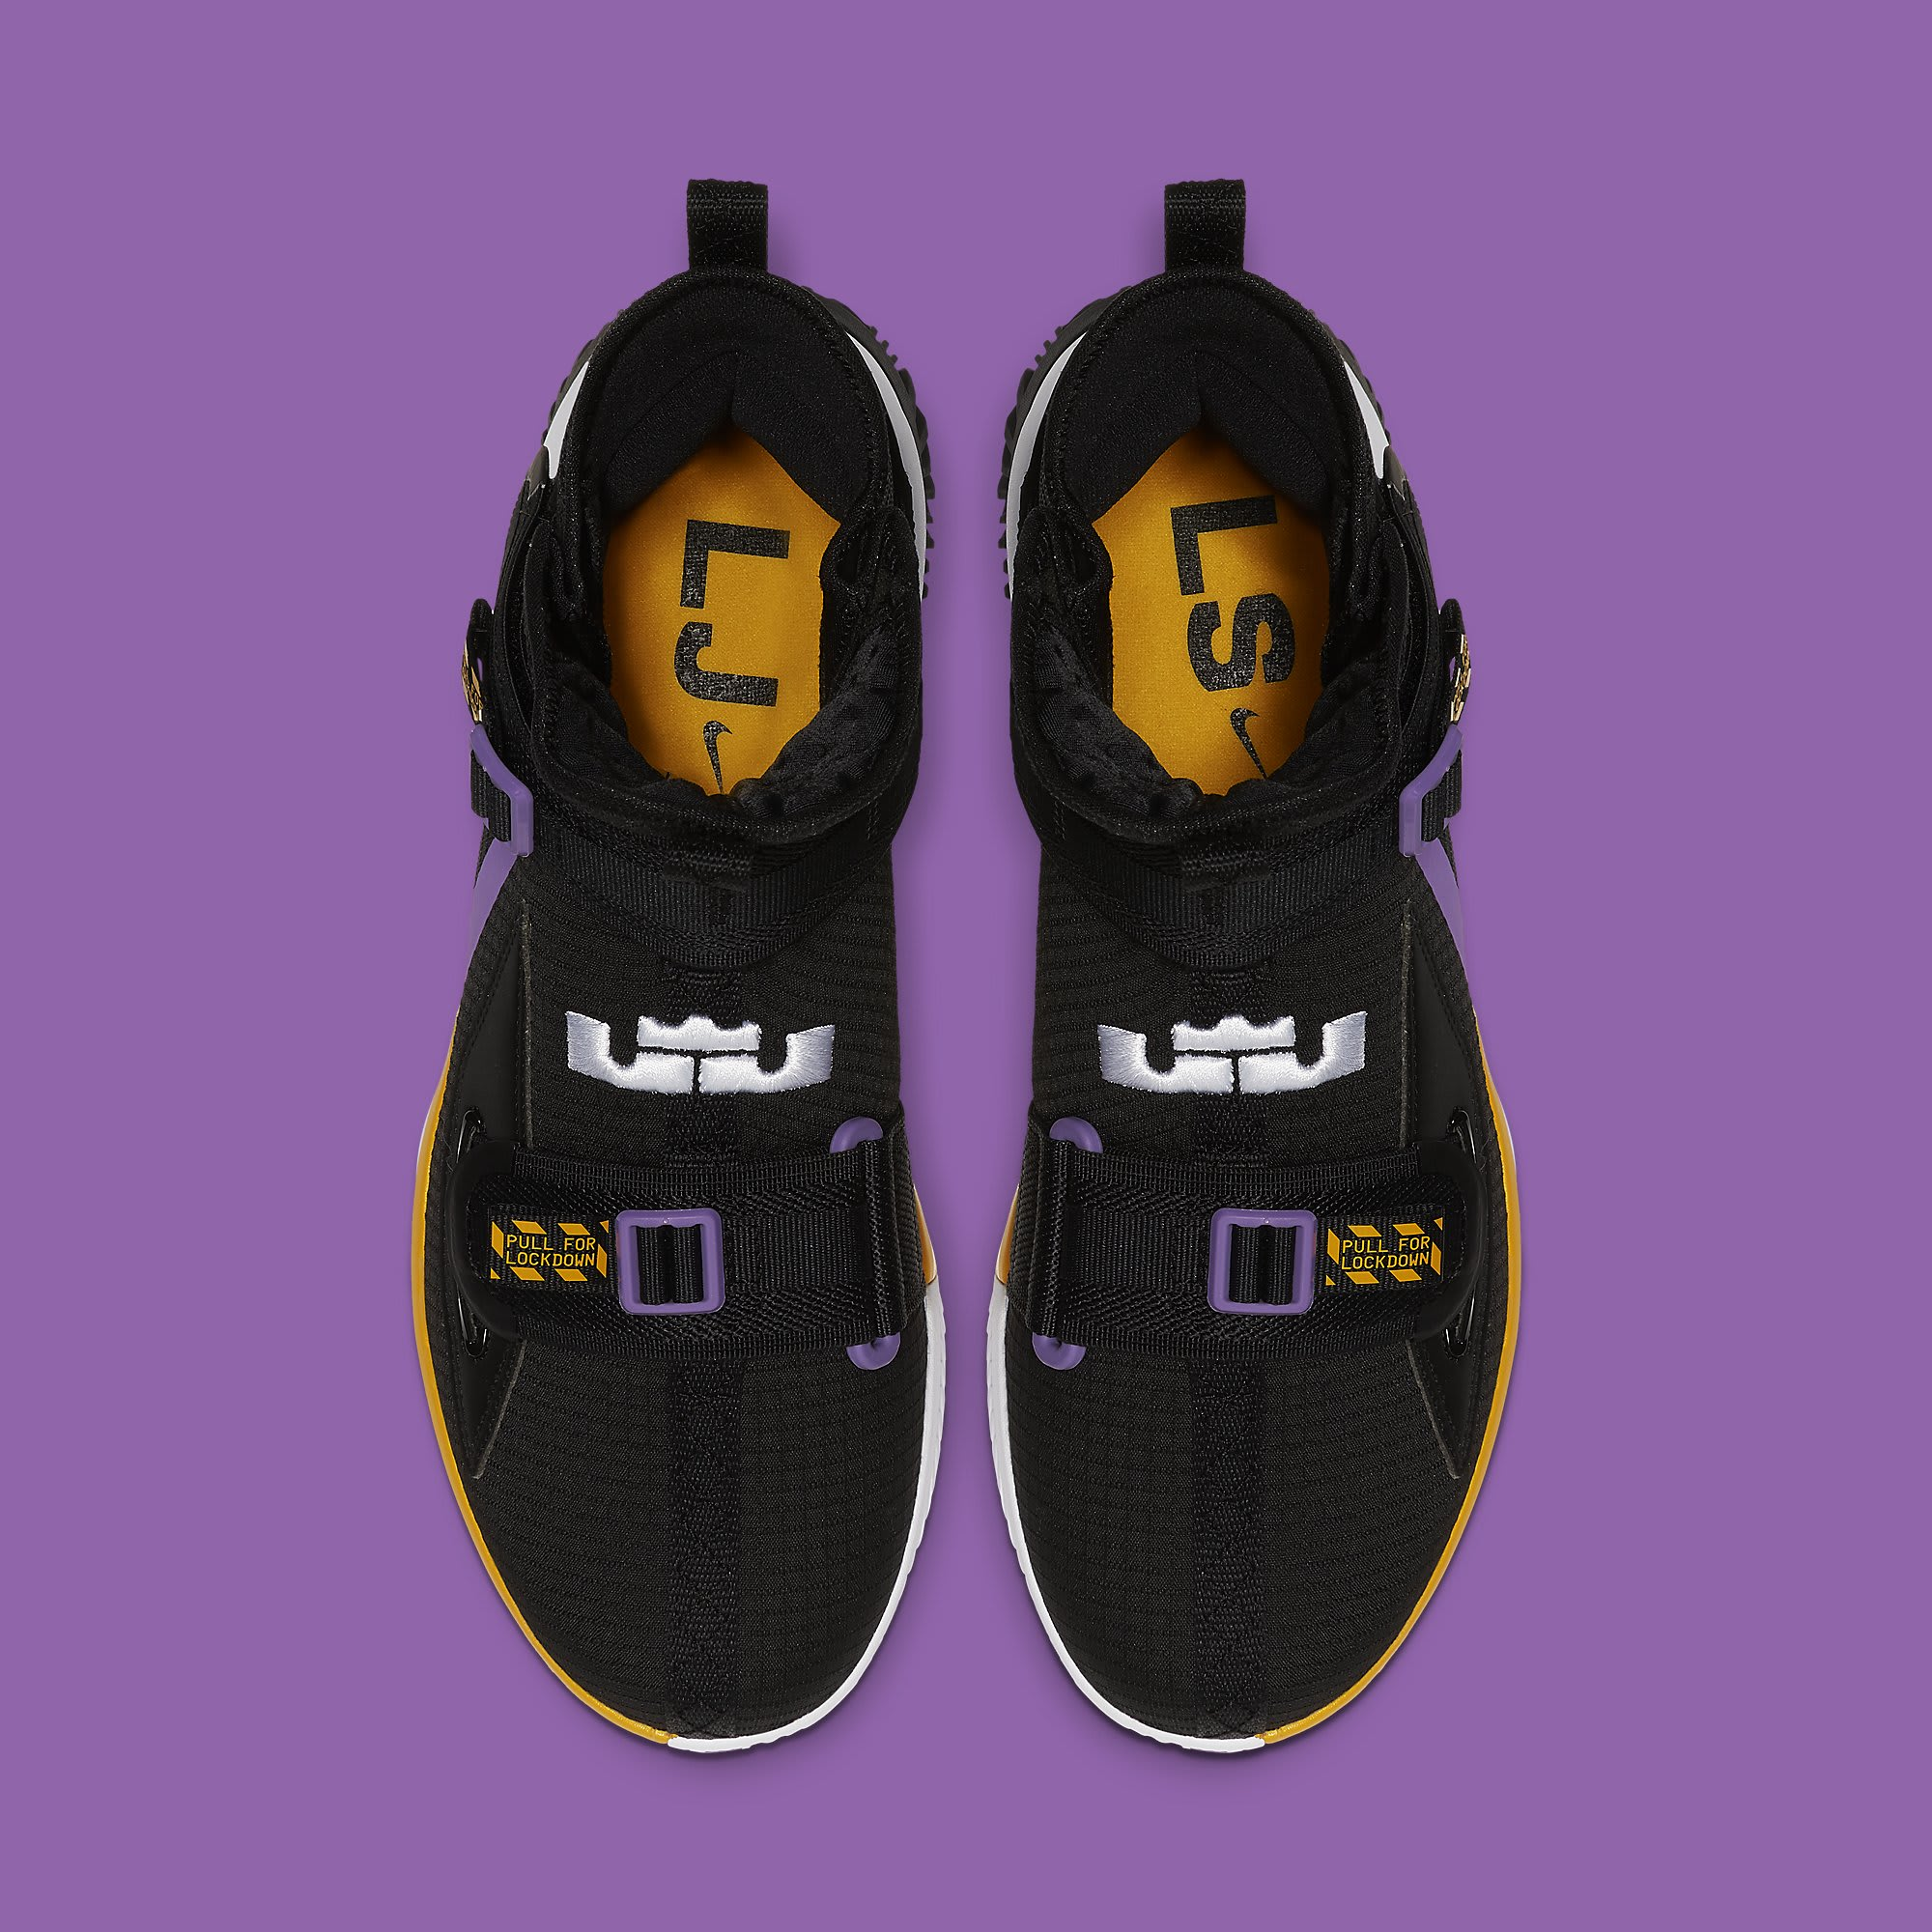 Nike LeBron Soldier 13 Lakers Release Date AR4228-004 Top